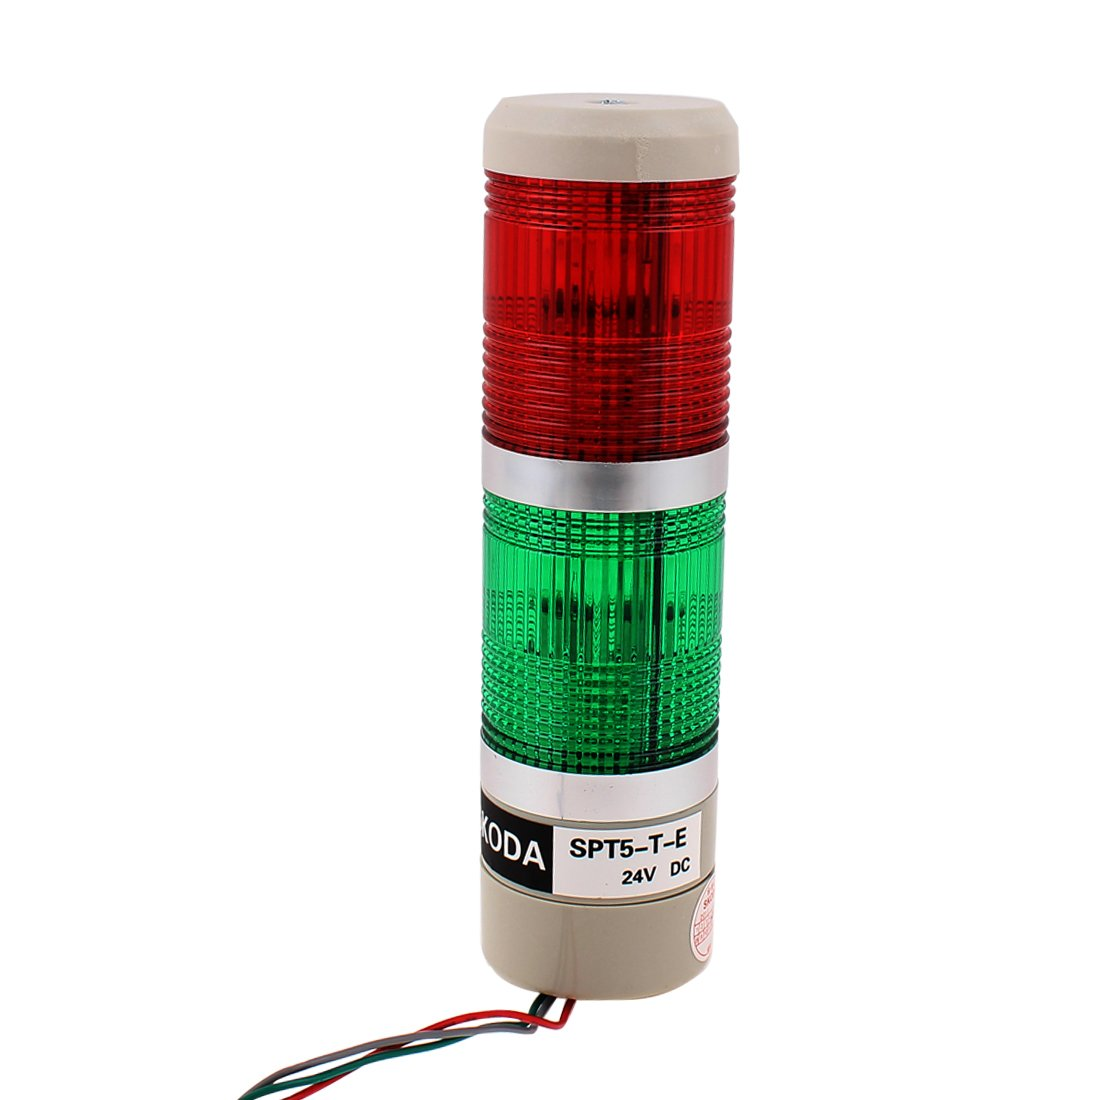 DC 24V Green Red Signal Tower Industrial Warning Stack Light SPT5-T-E